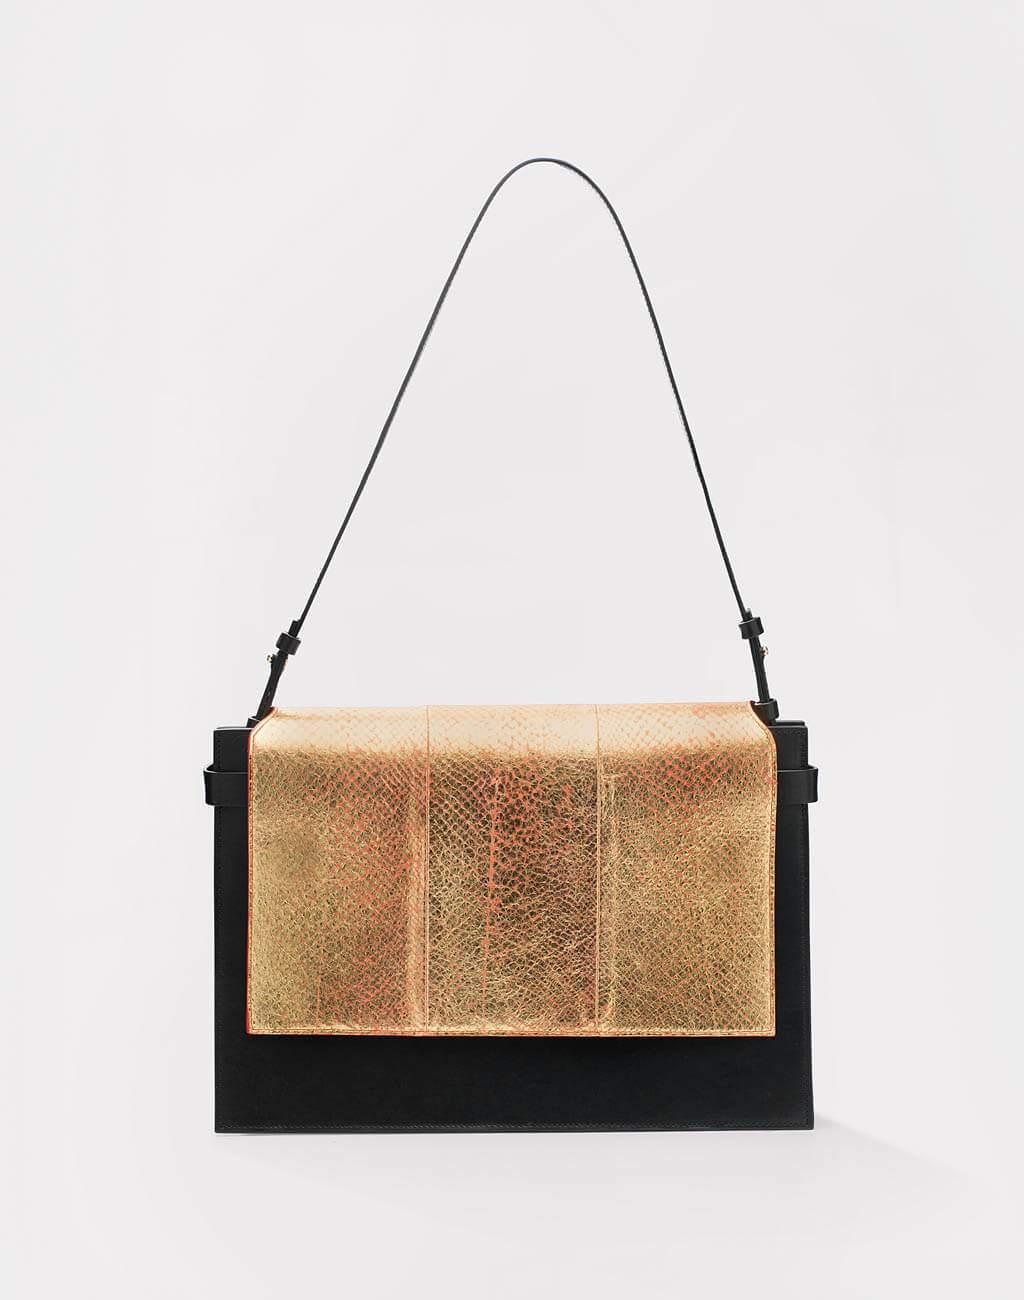 studio gyzell sustainable bags